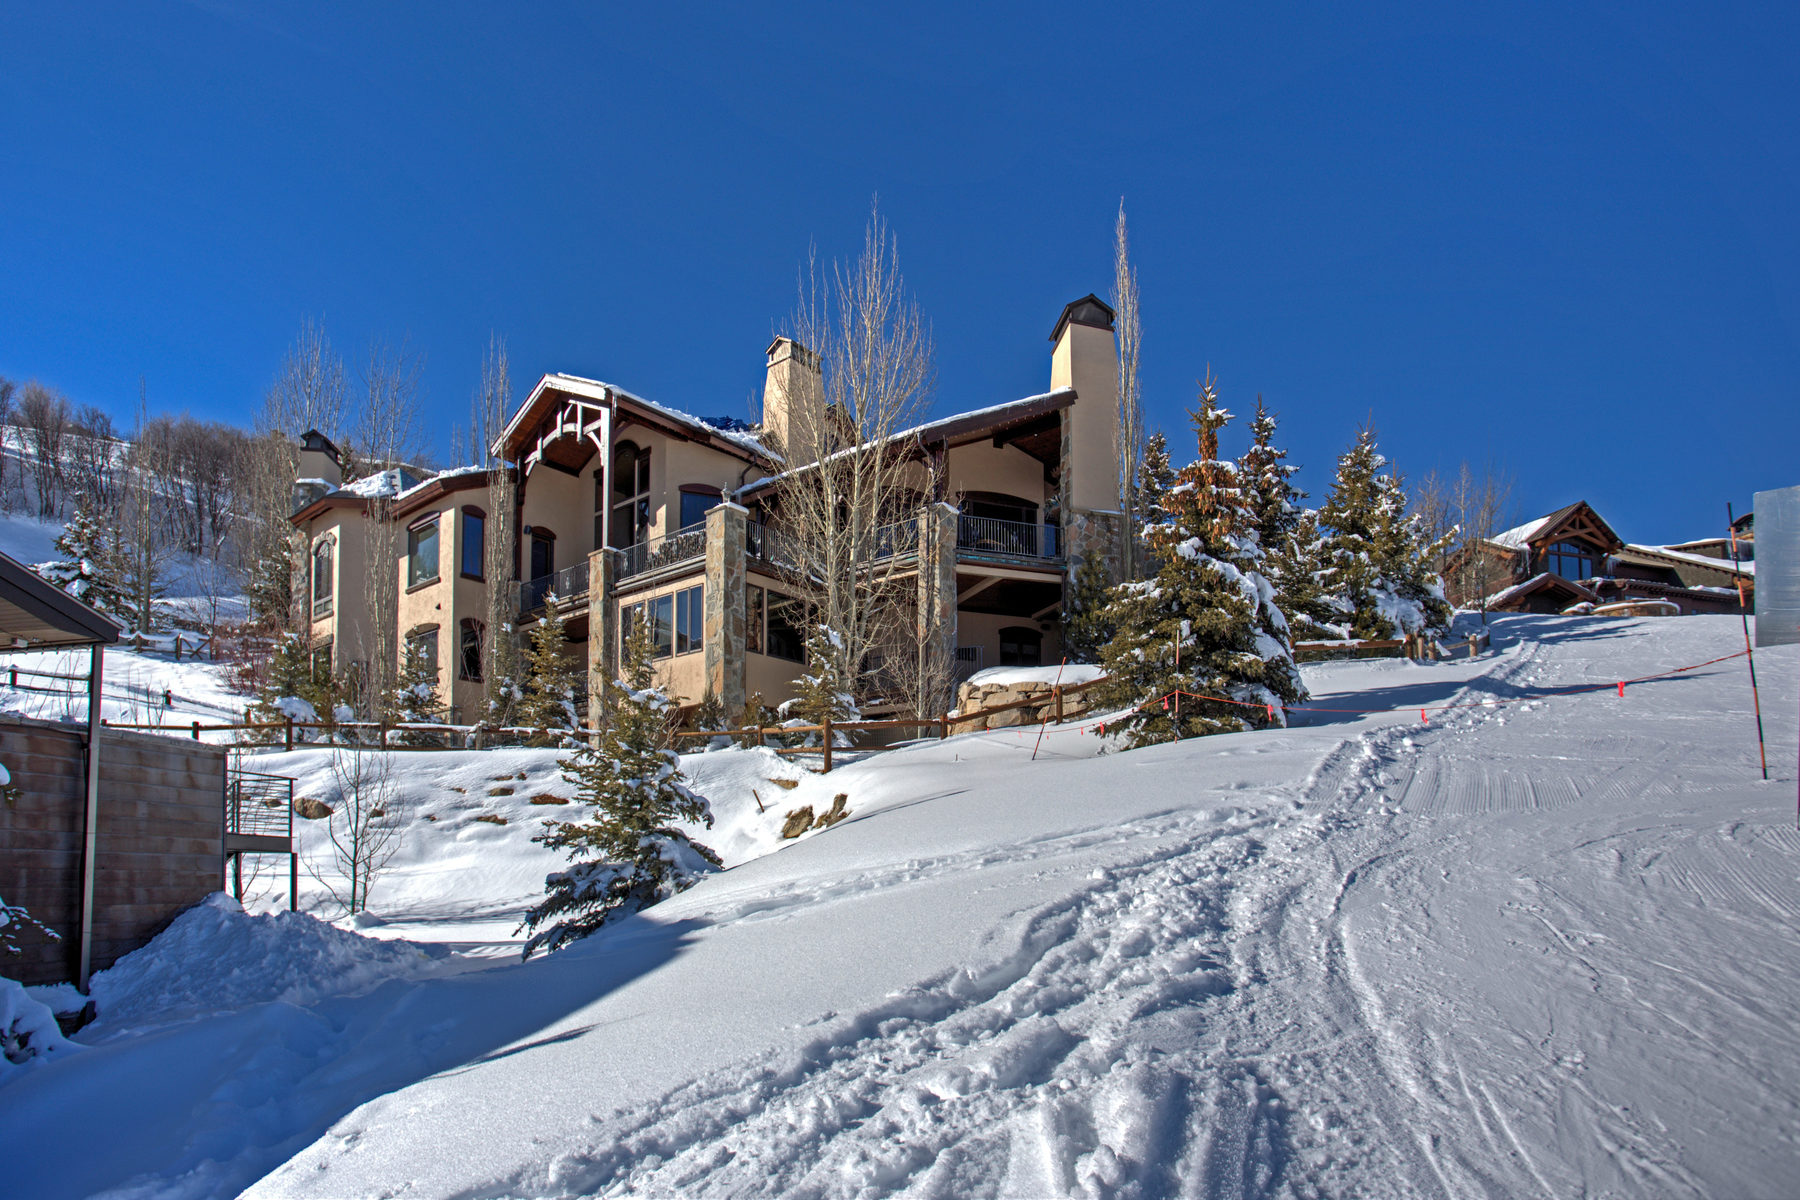 Maison unifamiliale pour l Vente à Casa Cielo, Above the Clouds in Deer Crest 3300 W Deer Crest Estates Dr Park City, Utah, 84060 États-Unis